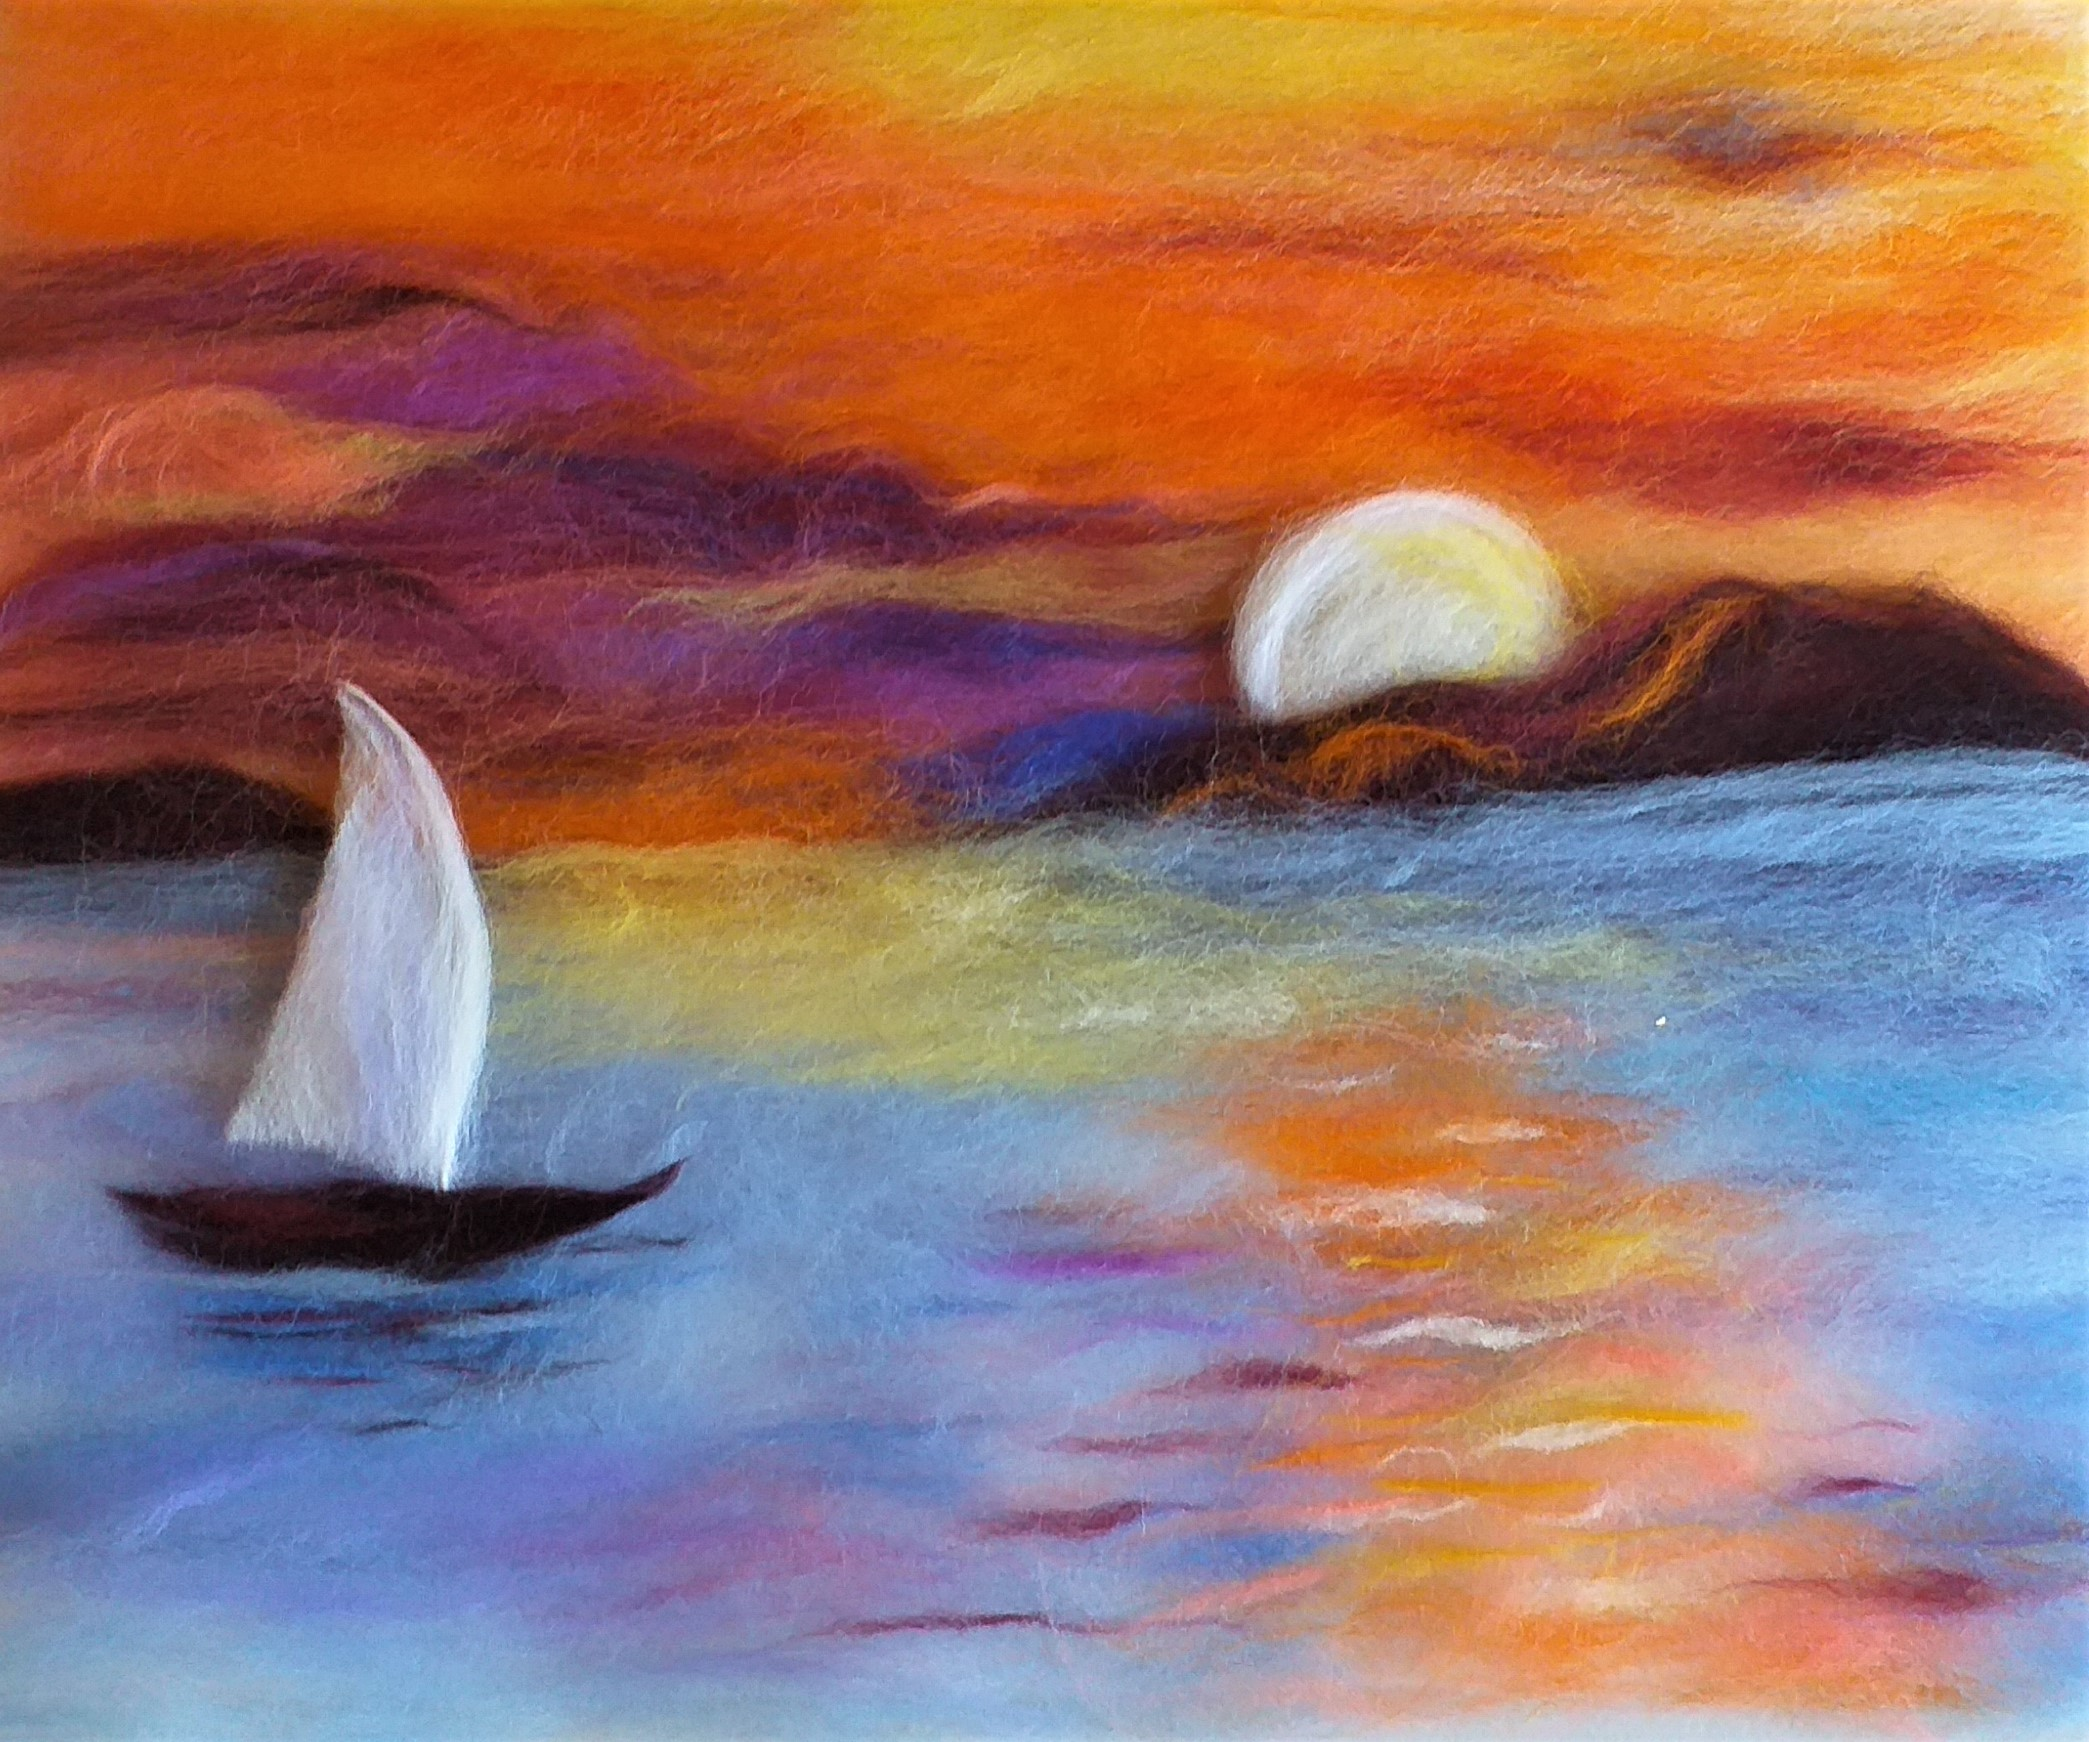 'Sunset' wool painting course for complete beginners